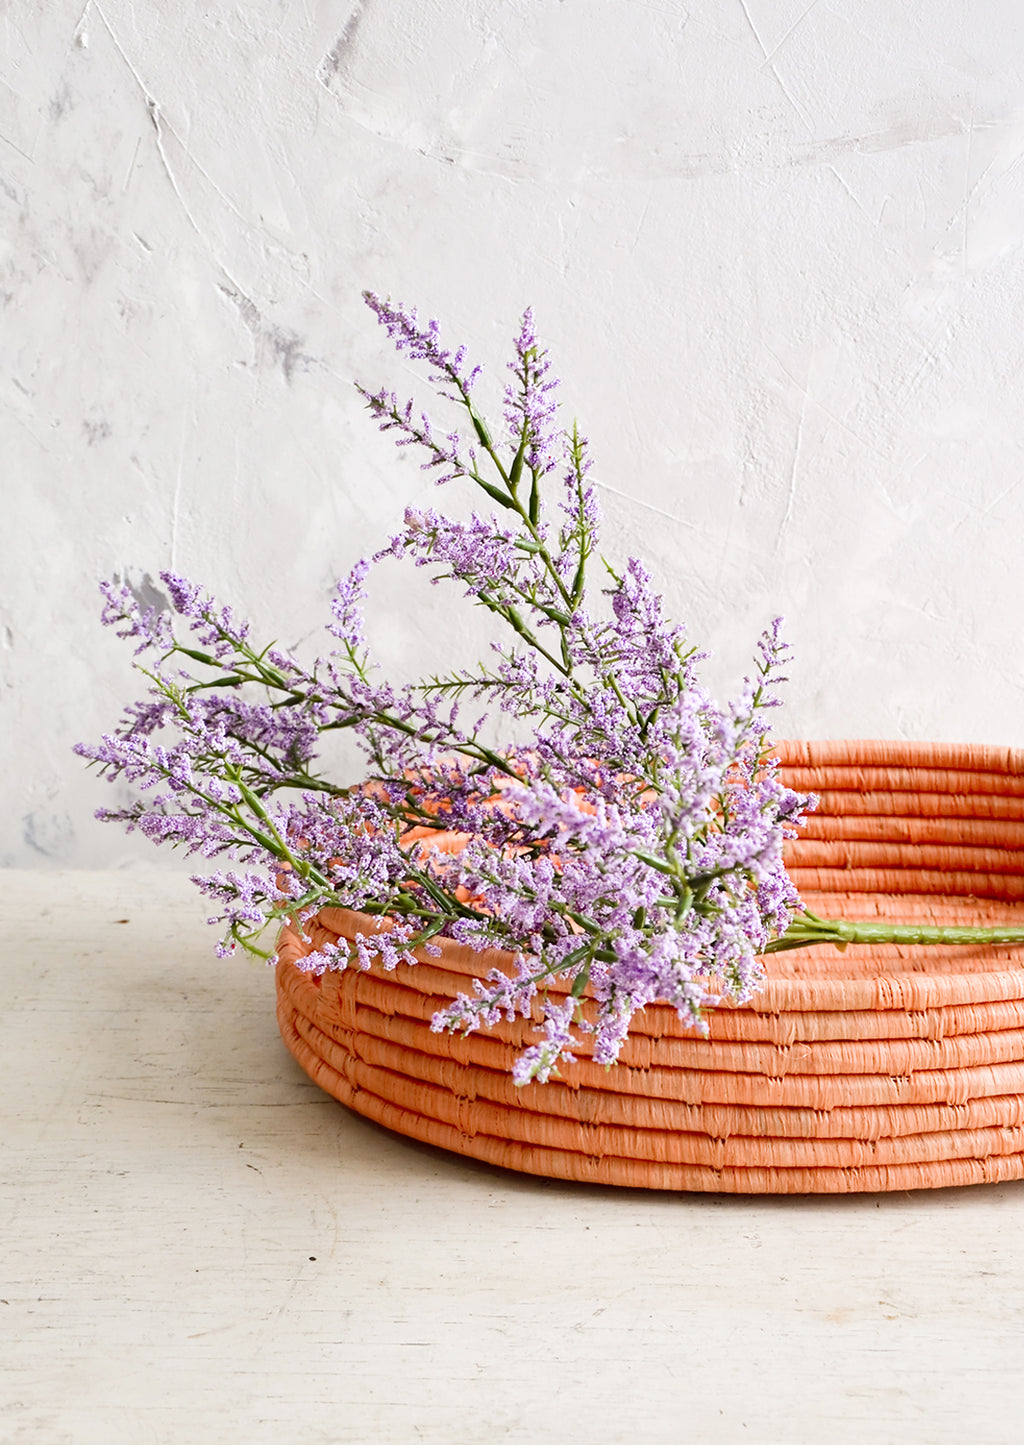 2: Woven raffia basket in peach color, housing purple flowers.